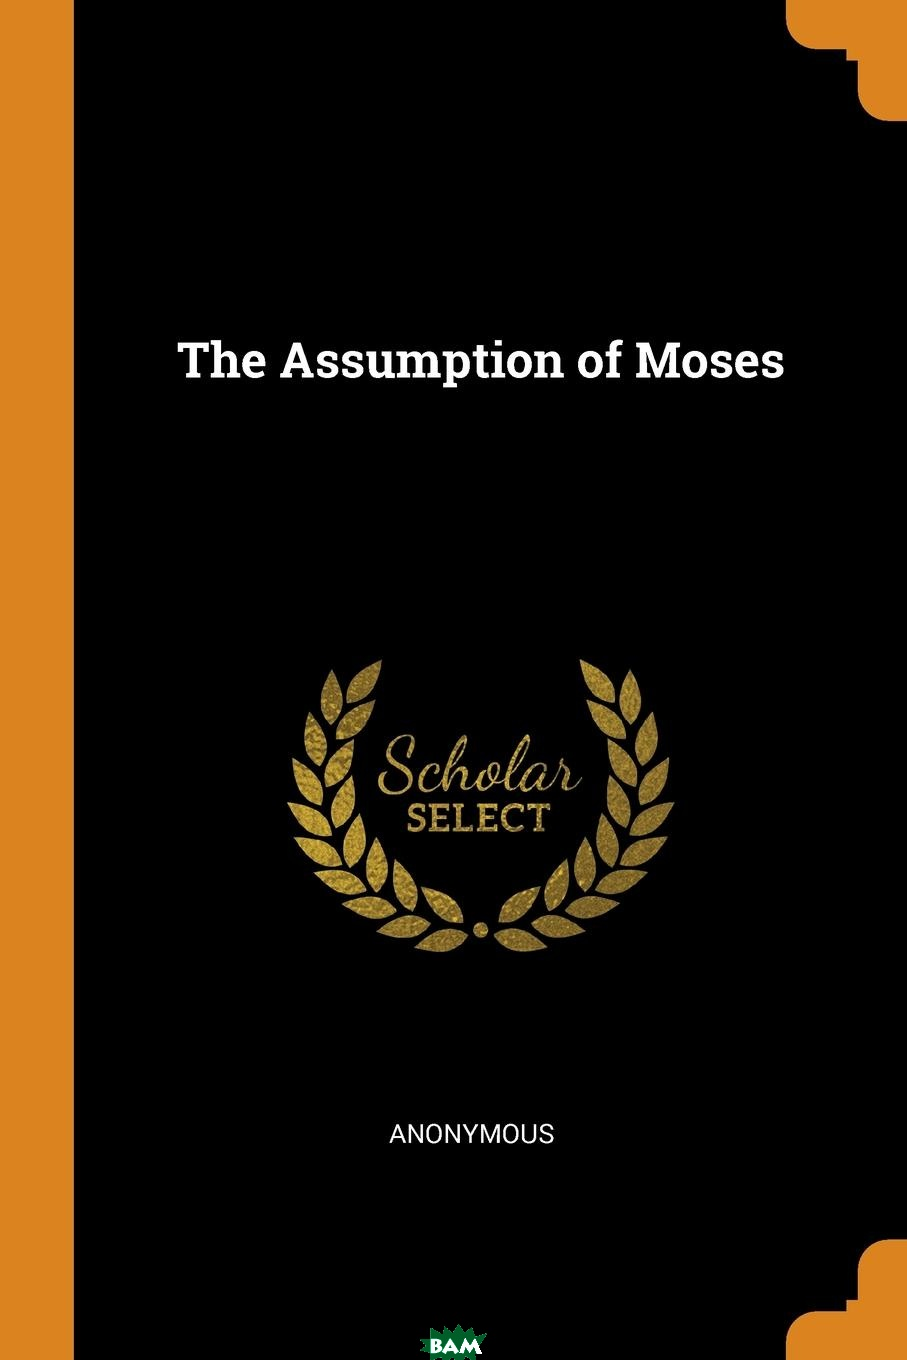 The Assumption of Moses